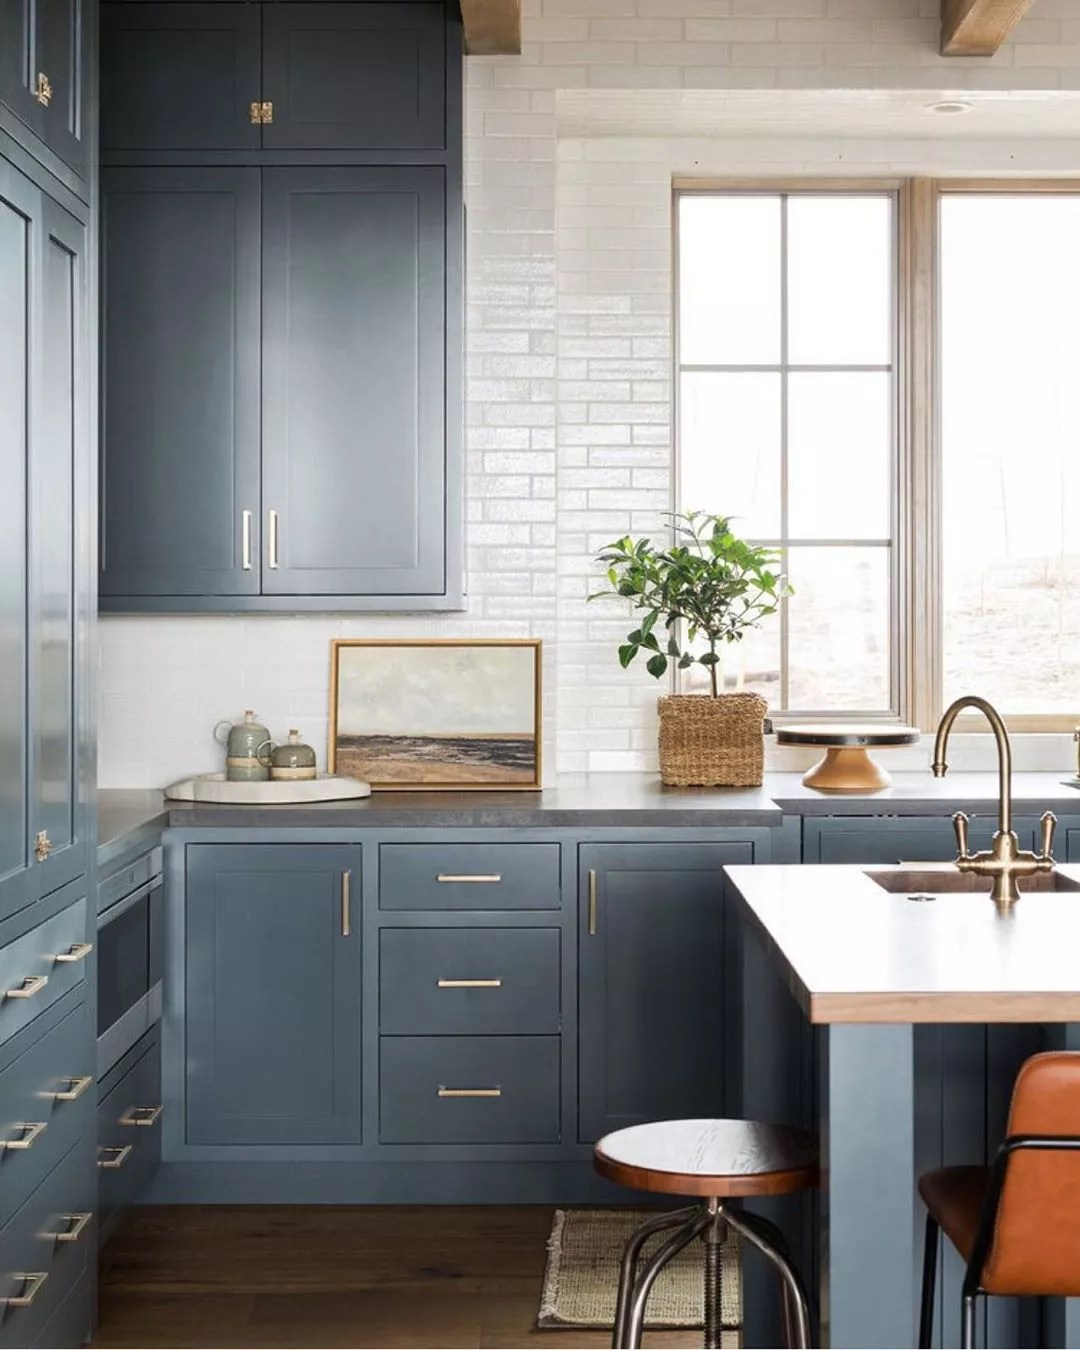 Modern kitchen with blue cabinets. Photo by Instagram user @studiomcgee